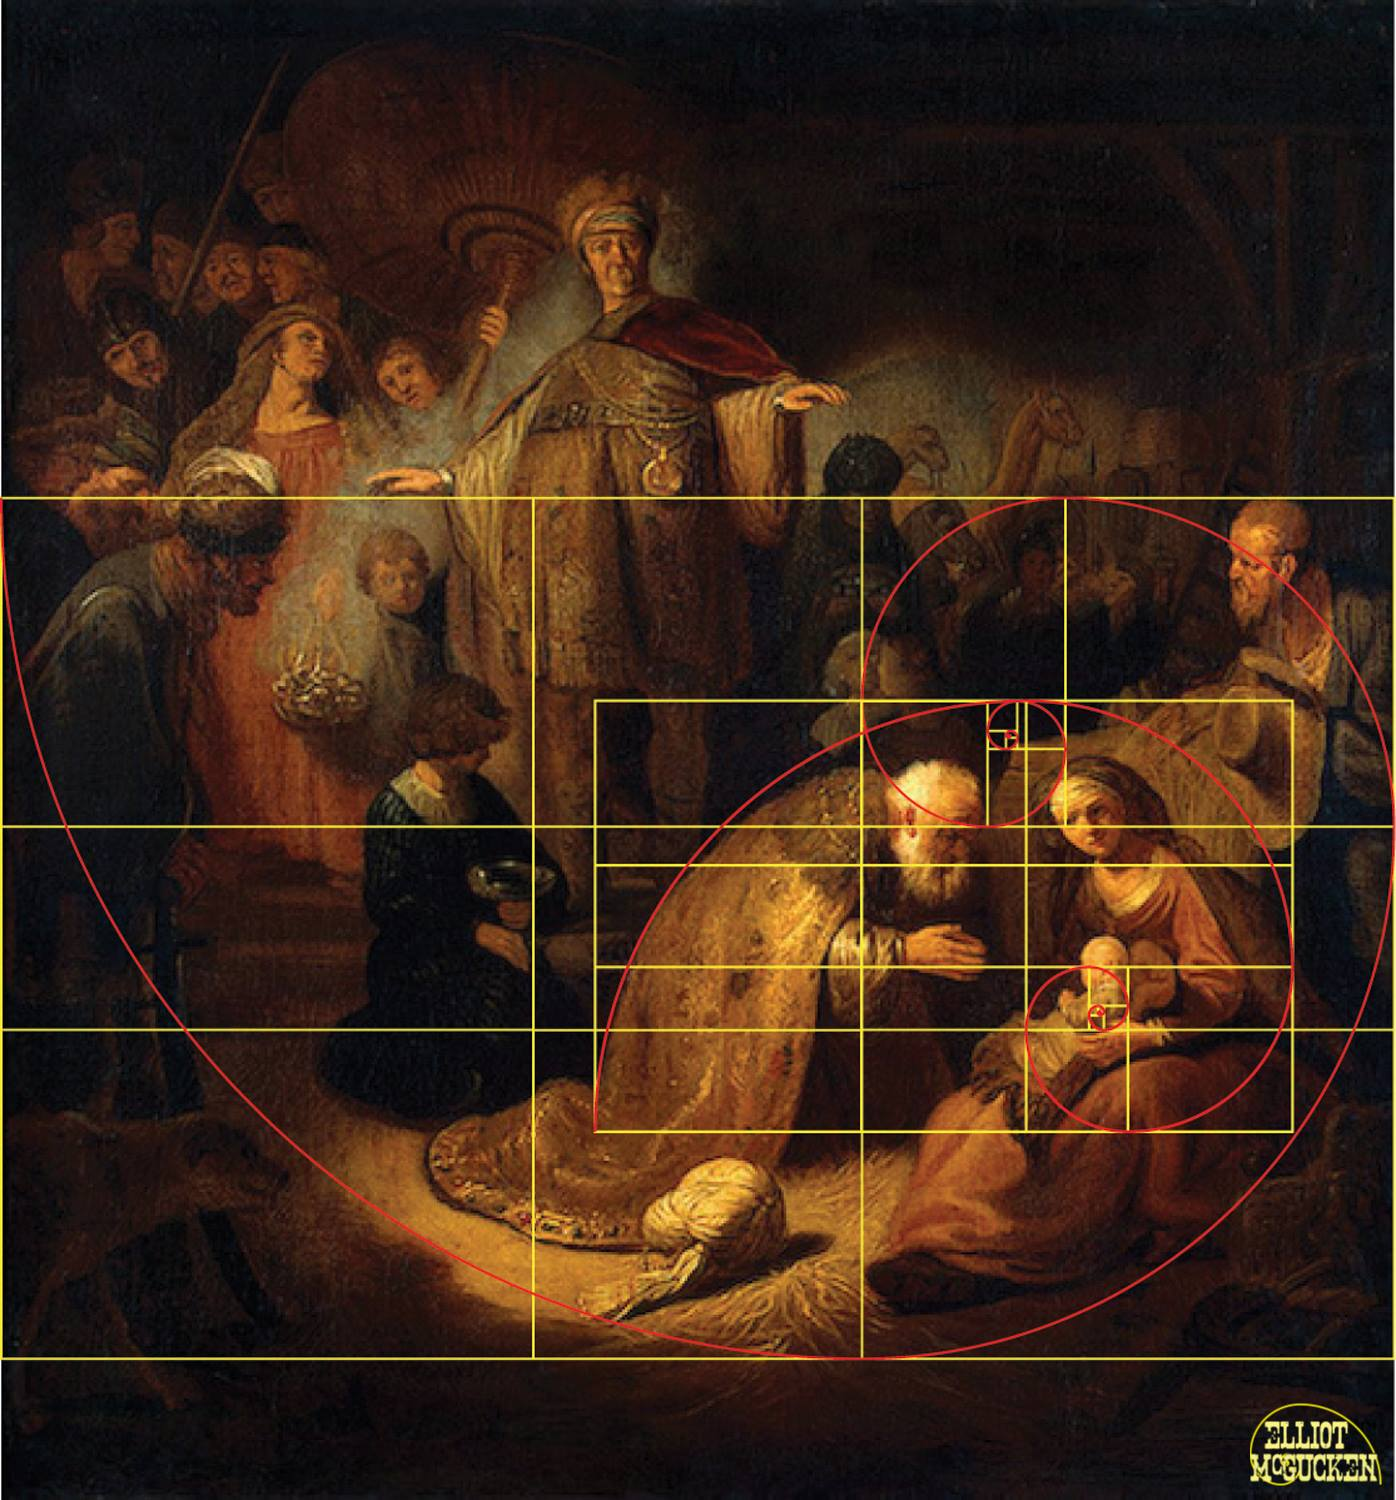 Golden ratio in Myths of the Magi painting